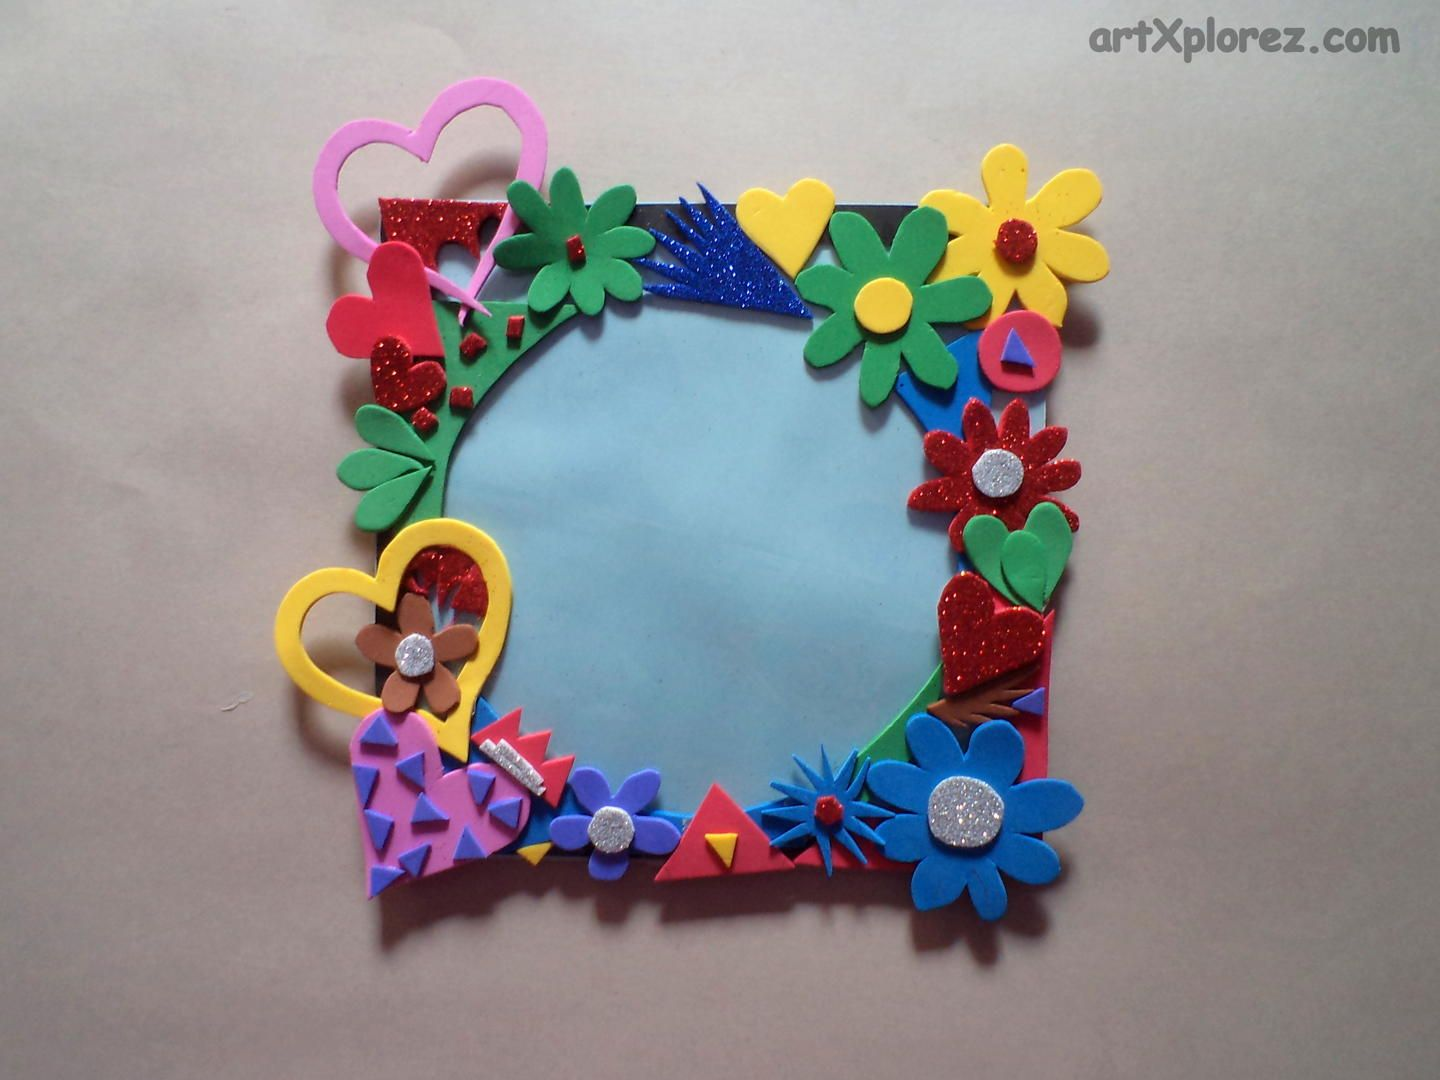 Handmade crafts using waste materials google search for Any craft item with waste material